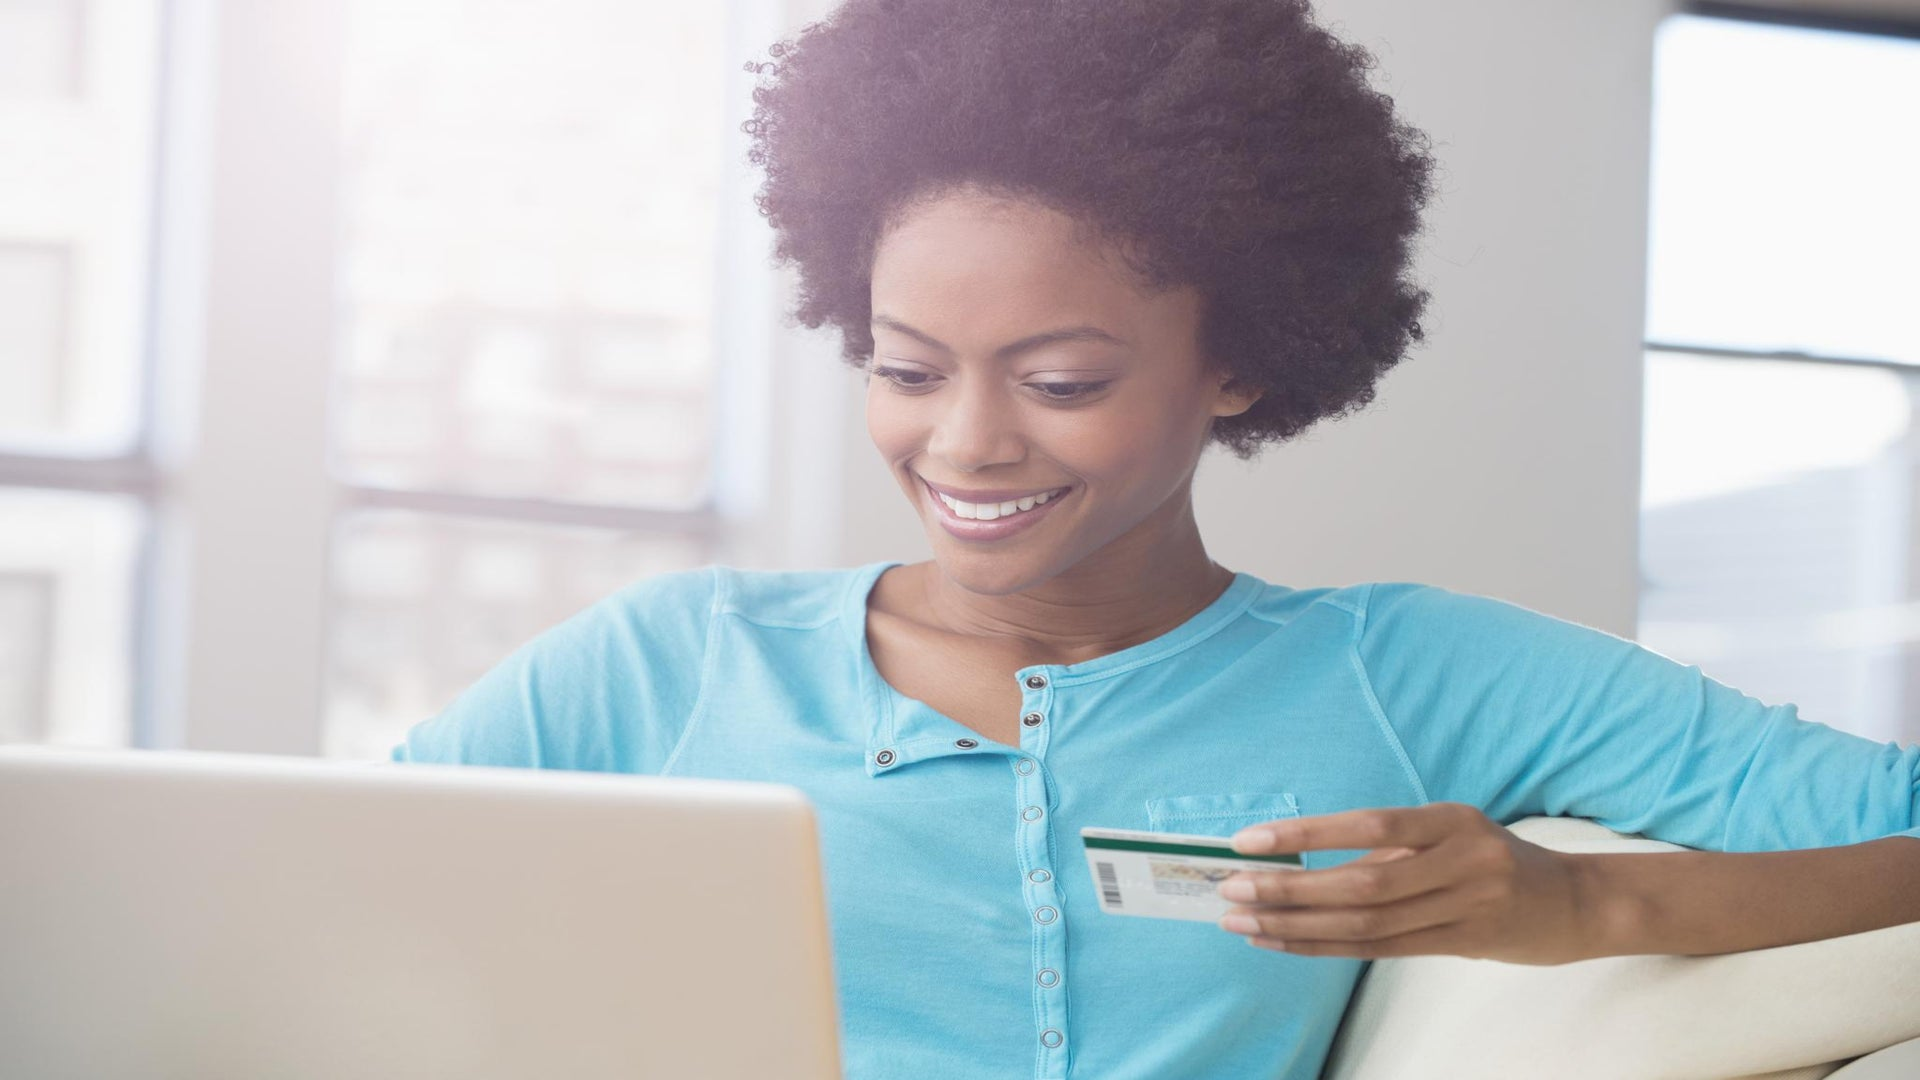 Buy Black Sites: The Best Search Engines for Finding Black Women Owned Businesses for the Holidays